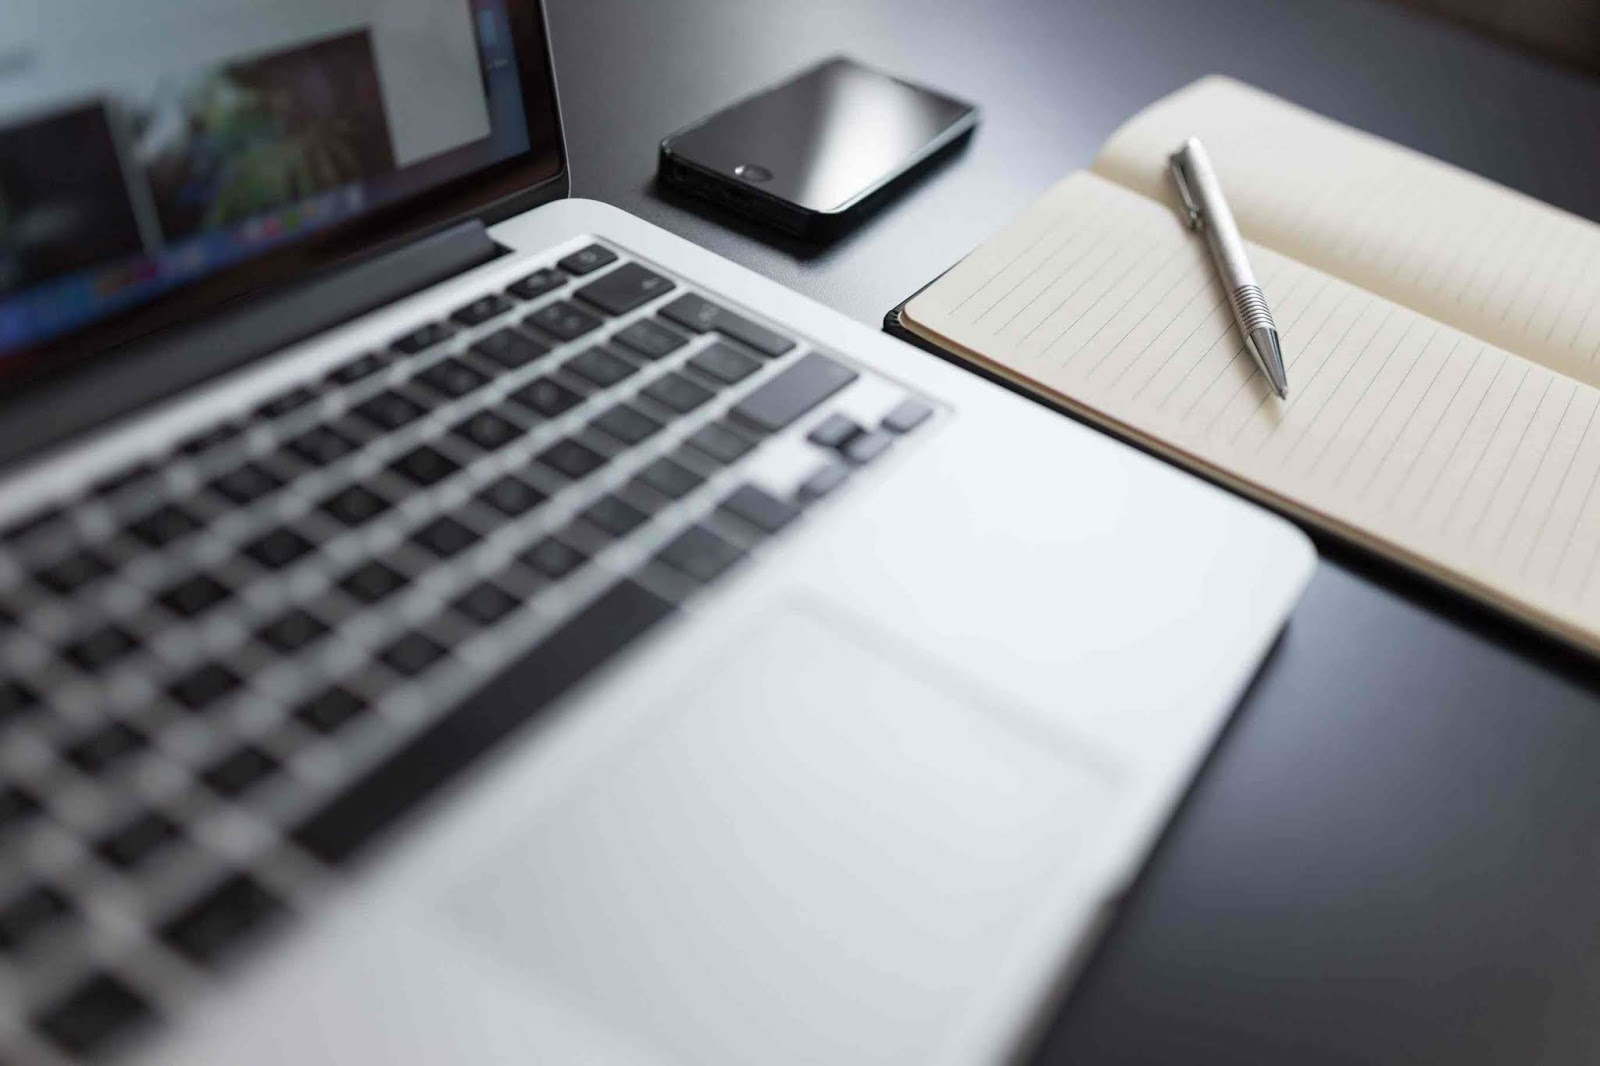 Black and white photo of a laptop, a notebook, a smartphone, and a pen